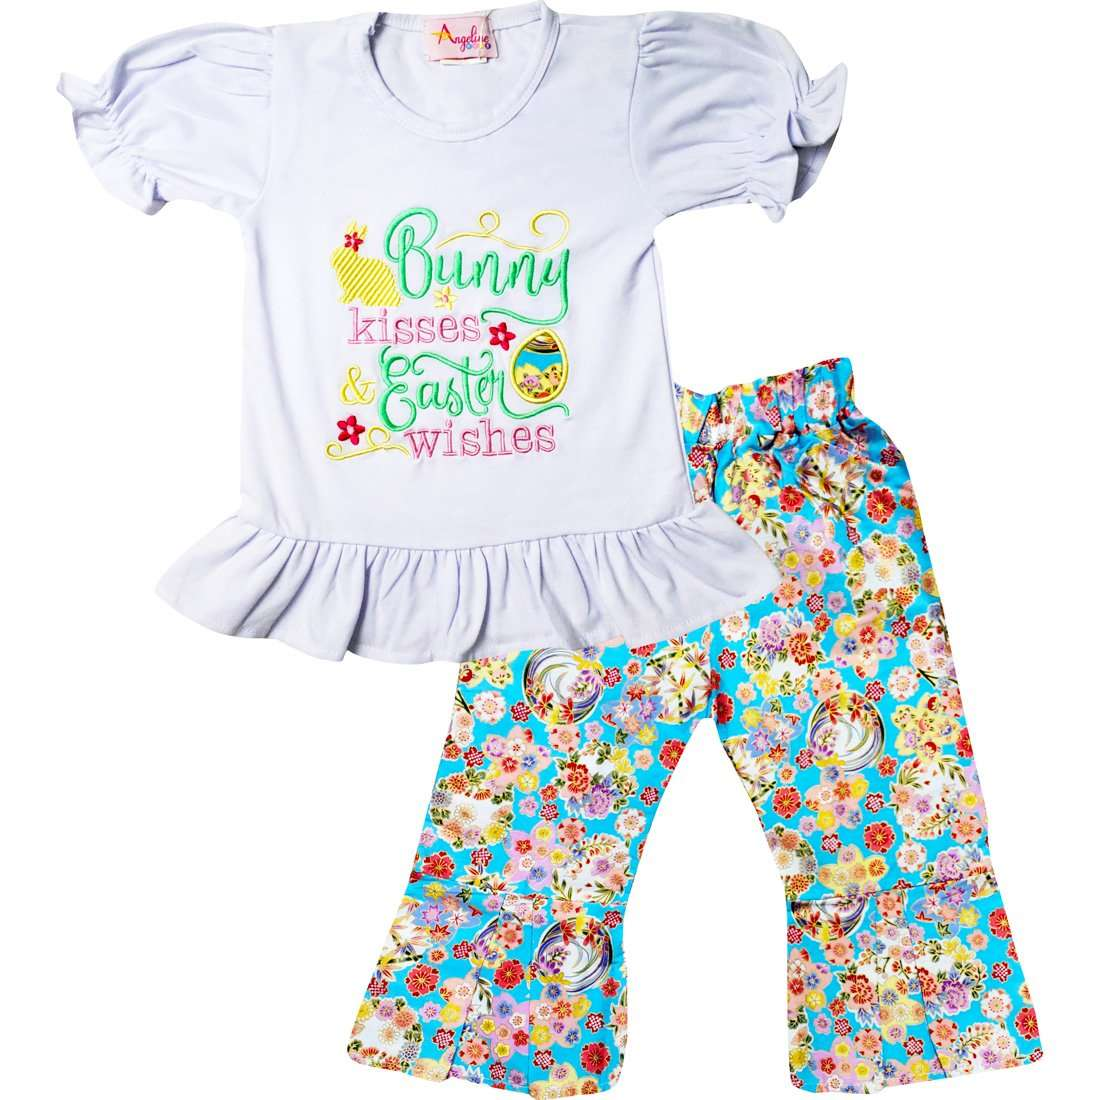 Angeline Kids:Baby Infant Girls Spring Blossom Bunny Kisses Easter Wishes Ruffles Top Pants Set